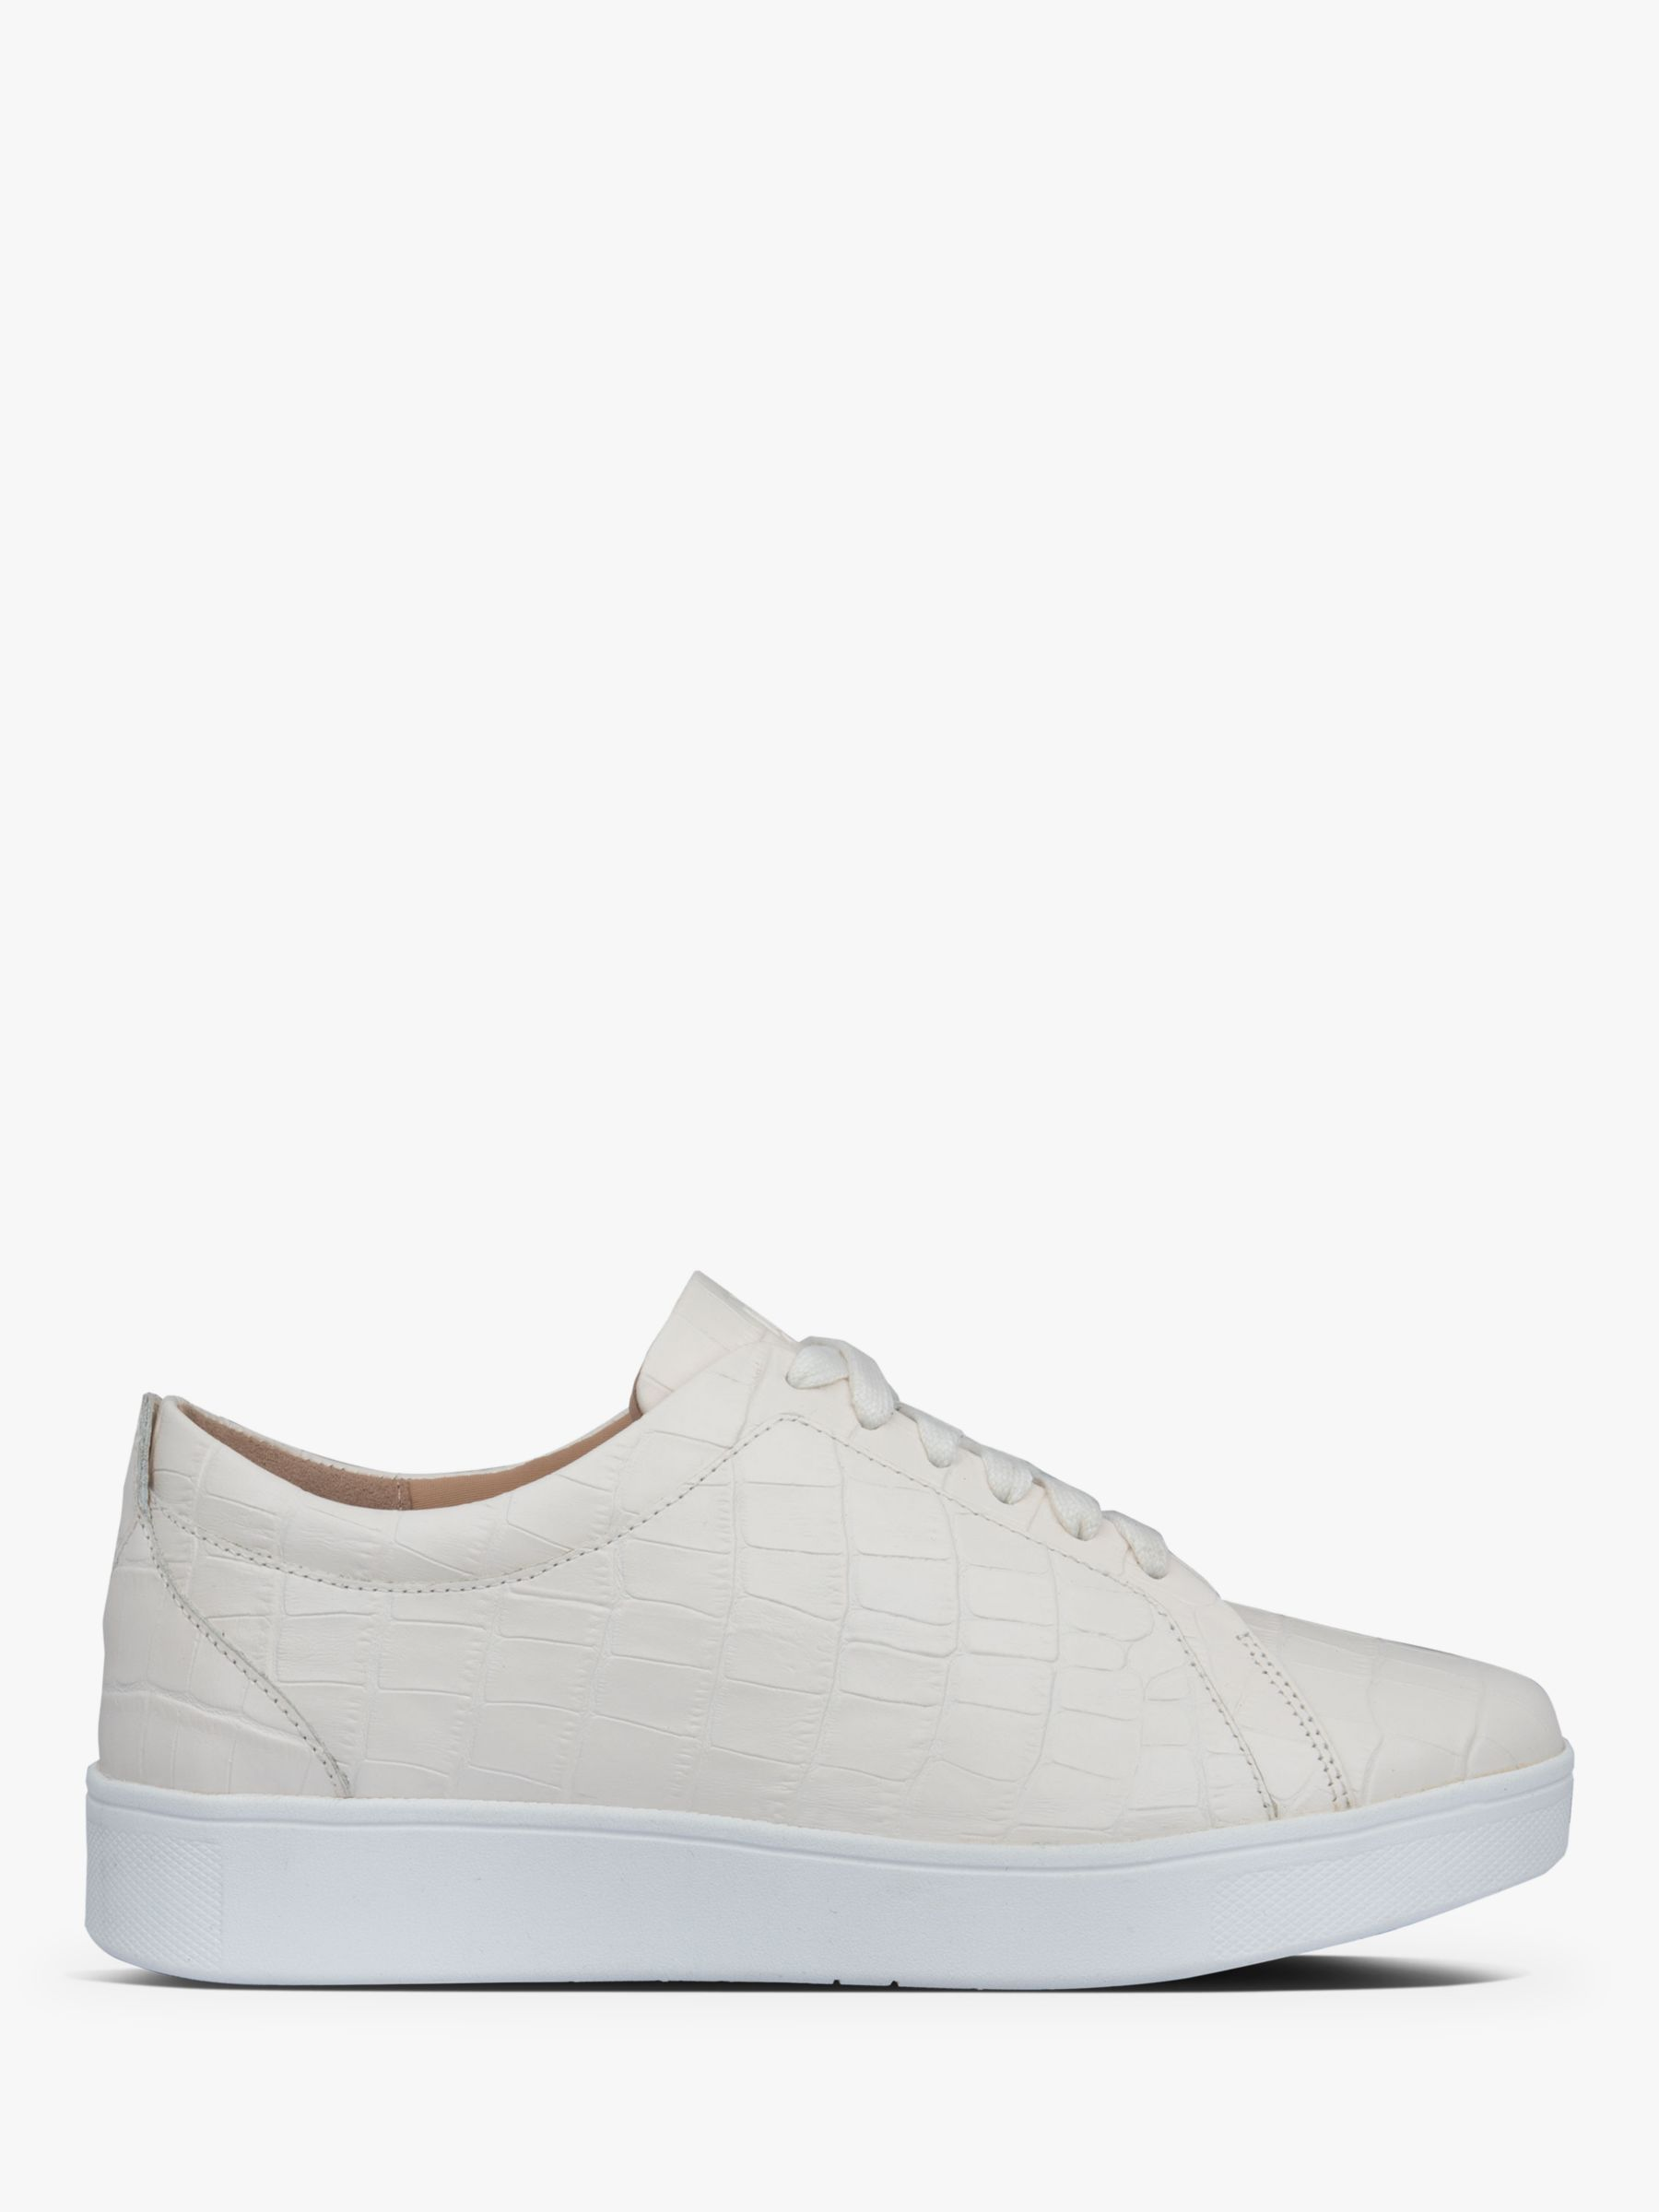 Fitflop FitFlop Rally Lace Up Leather Trainers